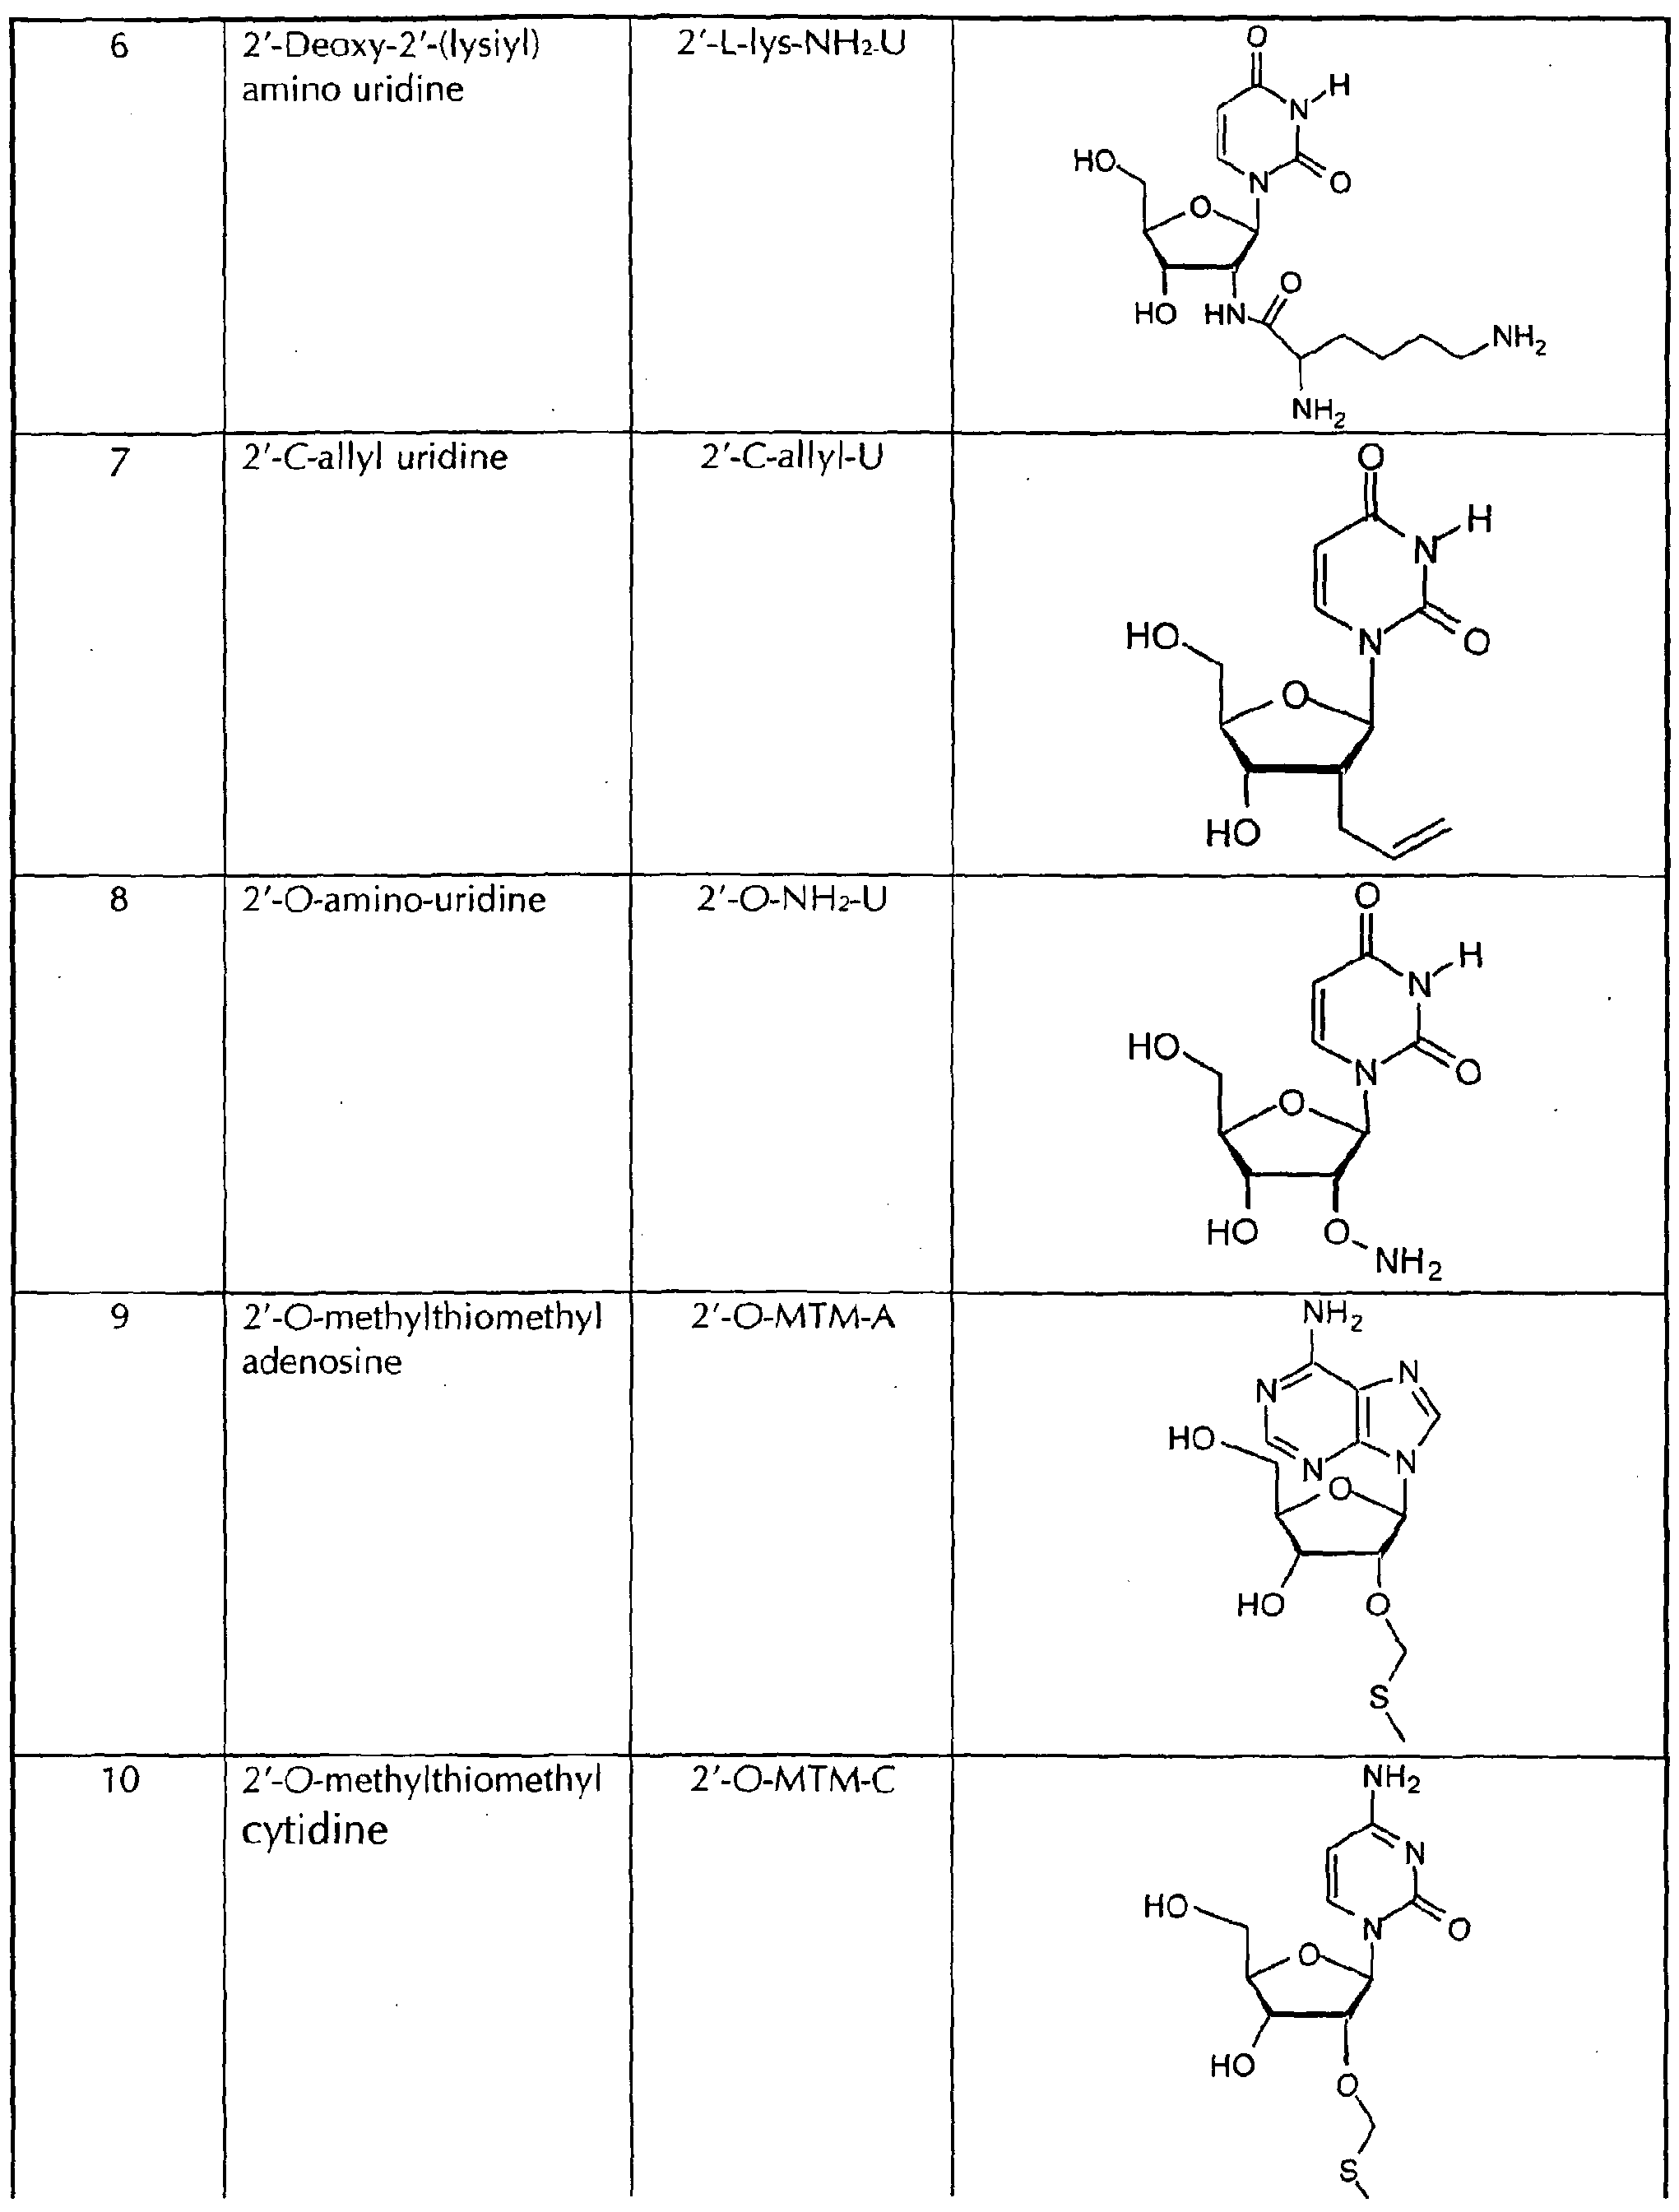 patent ep1212416a2 nucleic acid based modulators of gene Singer 241 12 Sewing Machine patent ep1212416a2 nucleic acid based modulators of gene expression patents